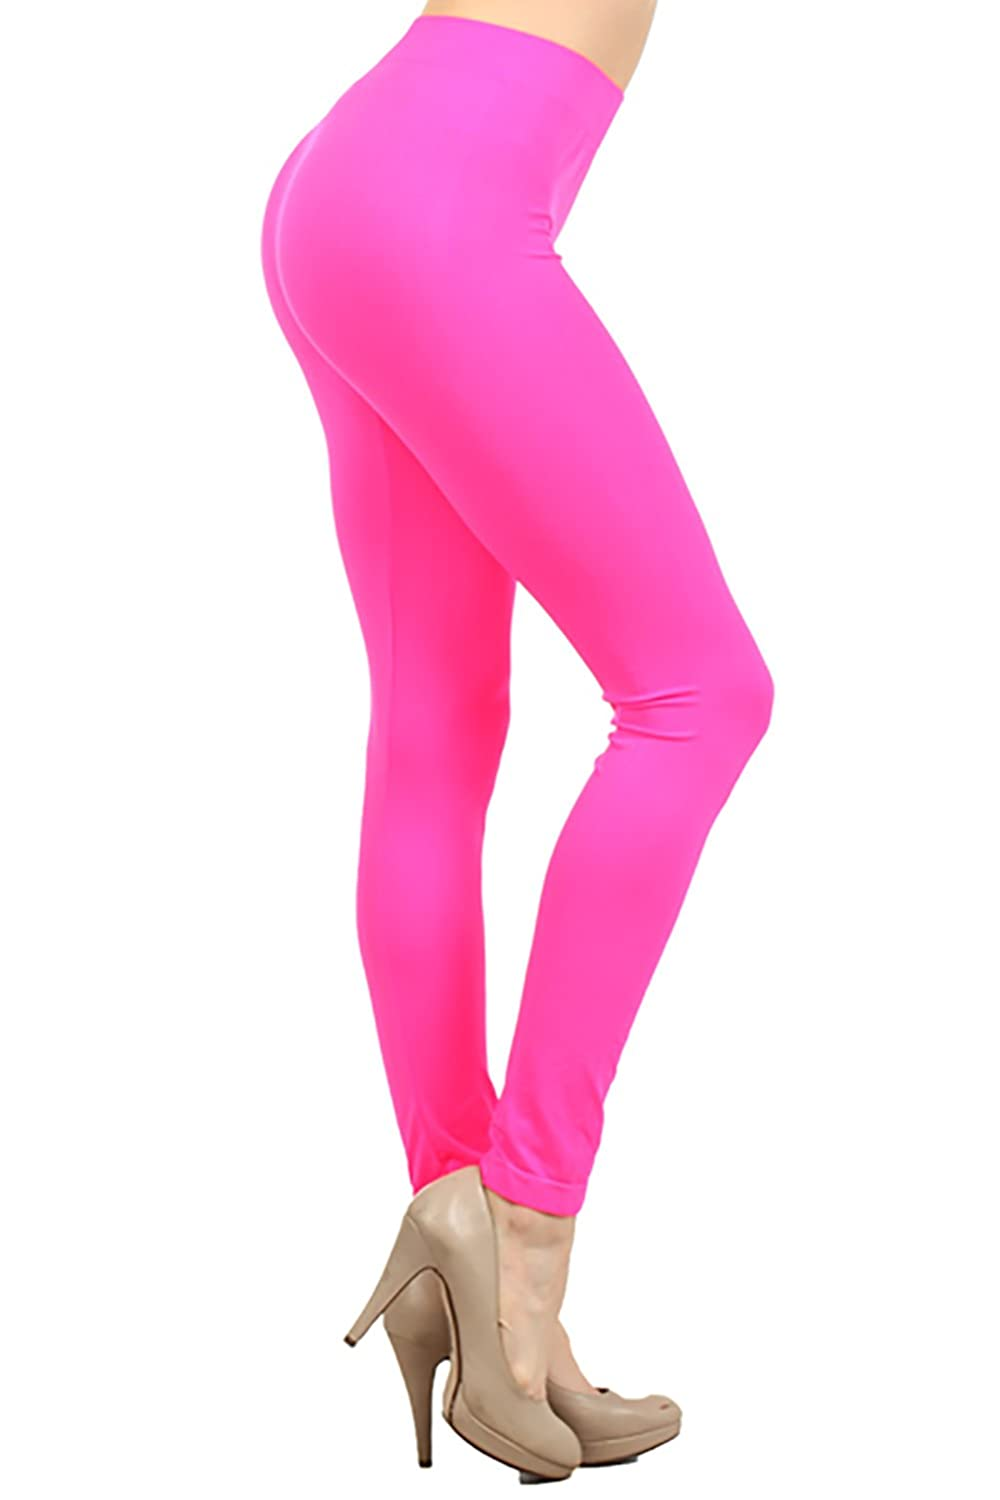 95ceddb57575c5 Amazon.com: NeonNation Colored Seamless Leggings Athletic Pants Costume  Party Tights (Army Green): Clothing